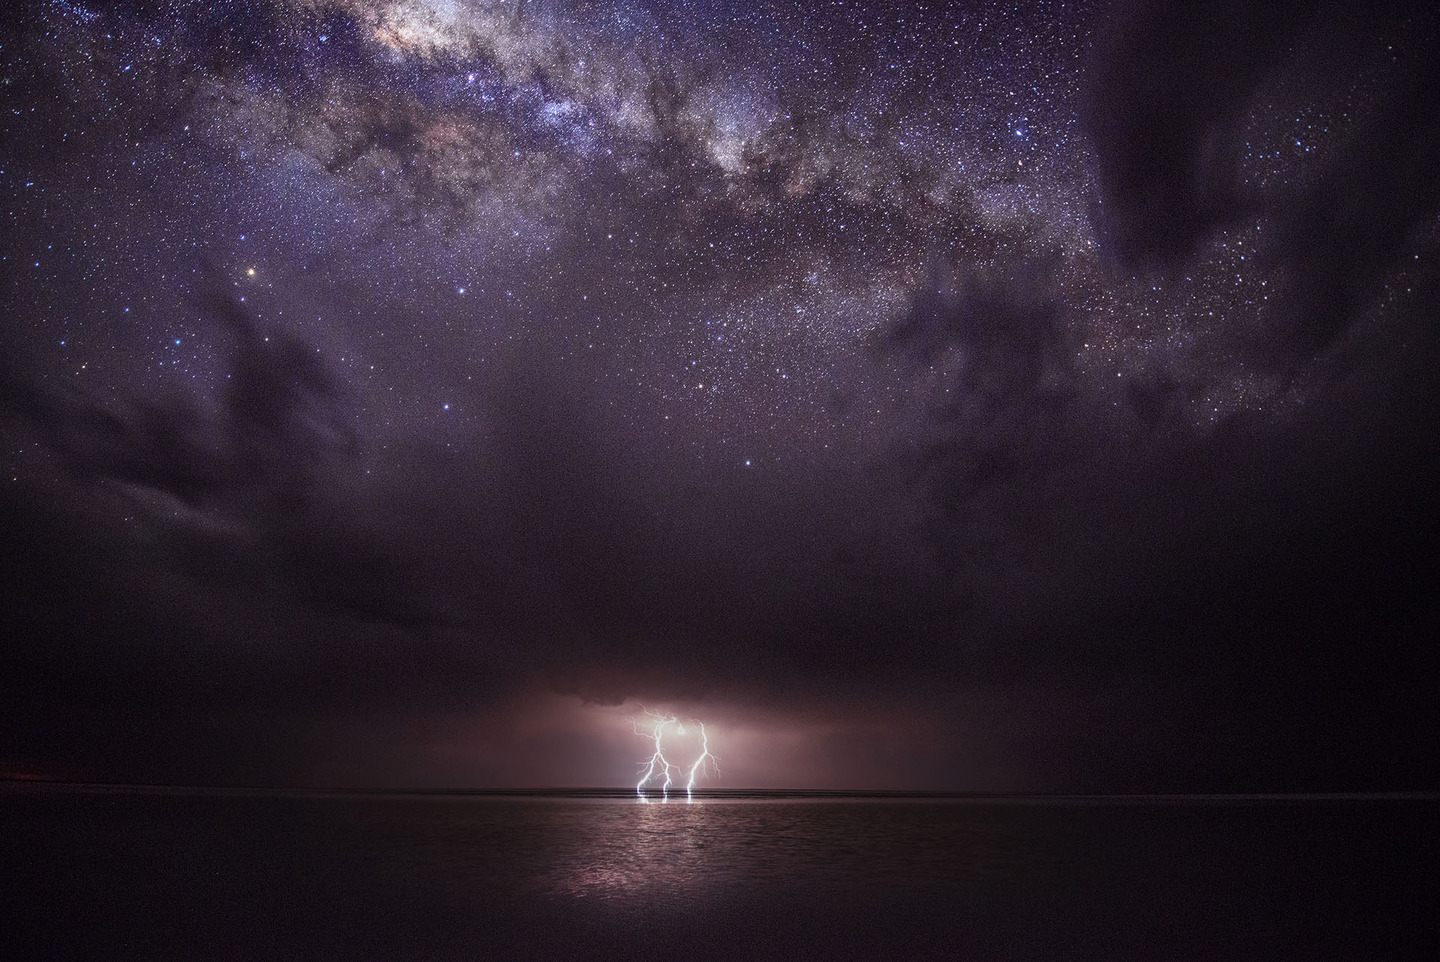 The Milky Way and some lightning.